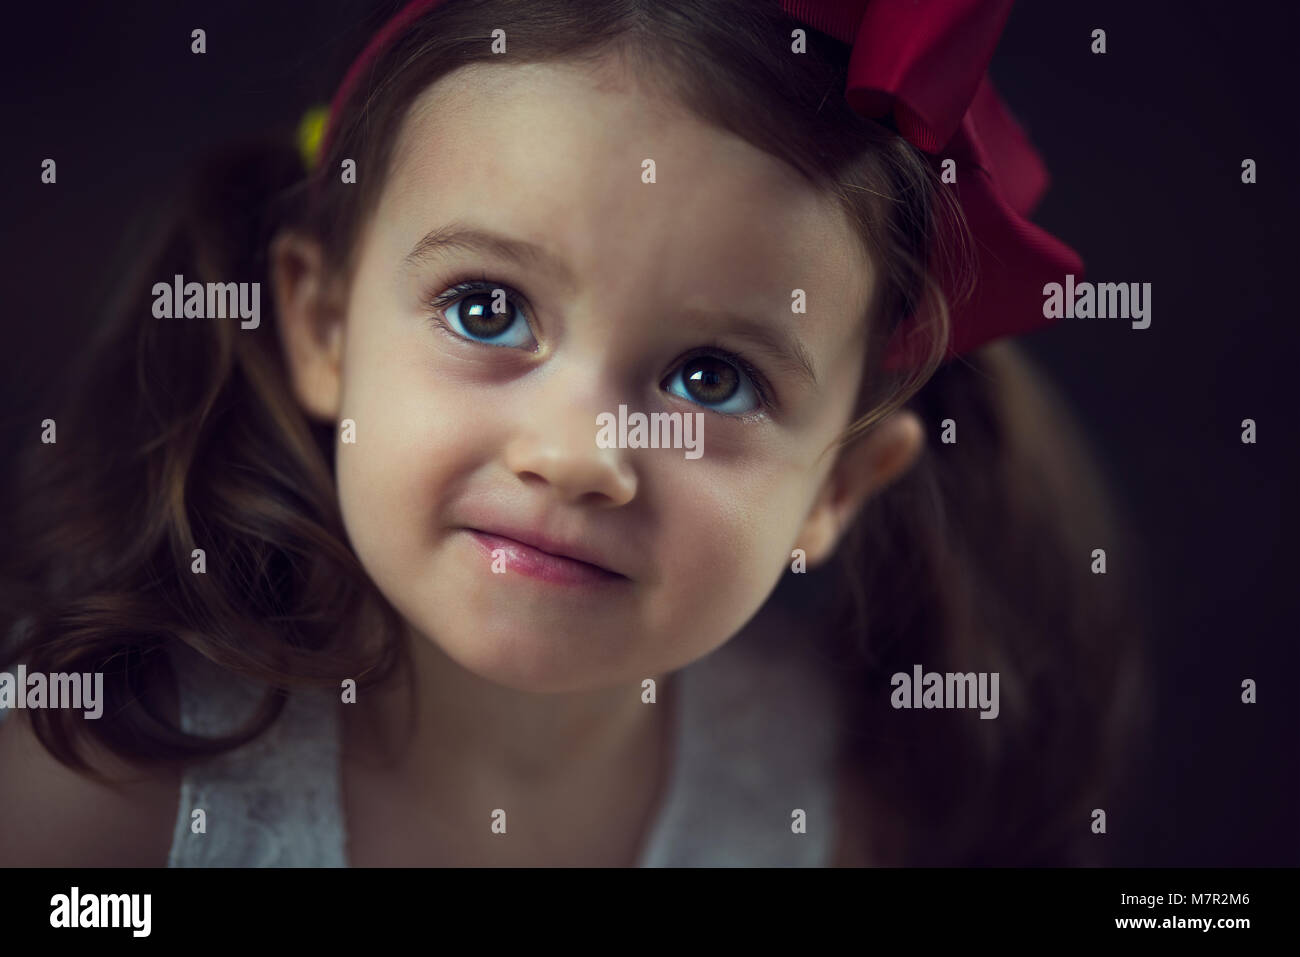 A portrait of a little girl. Studio photography - Stock Image